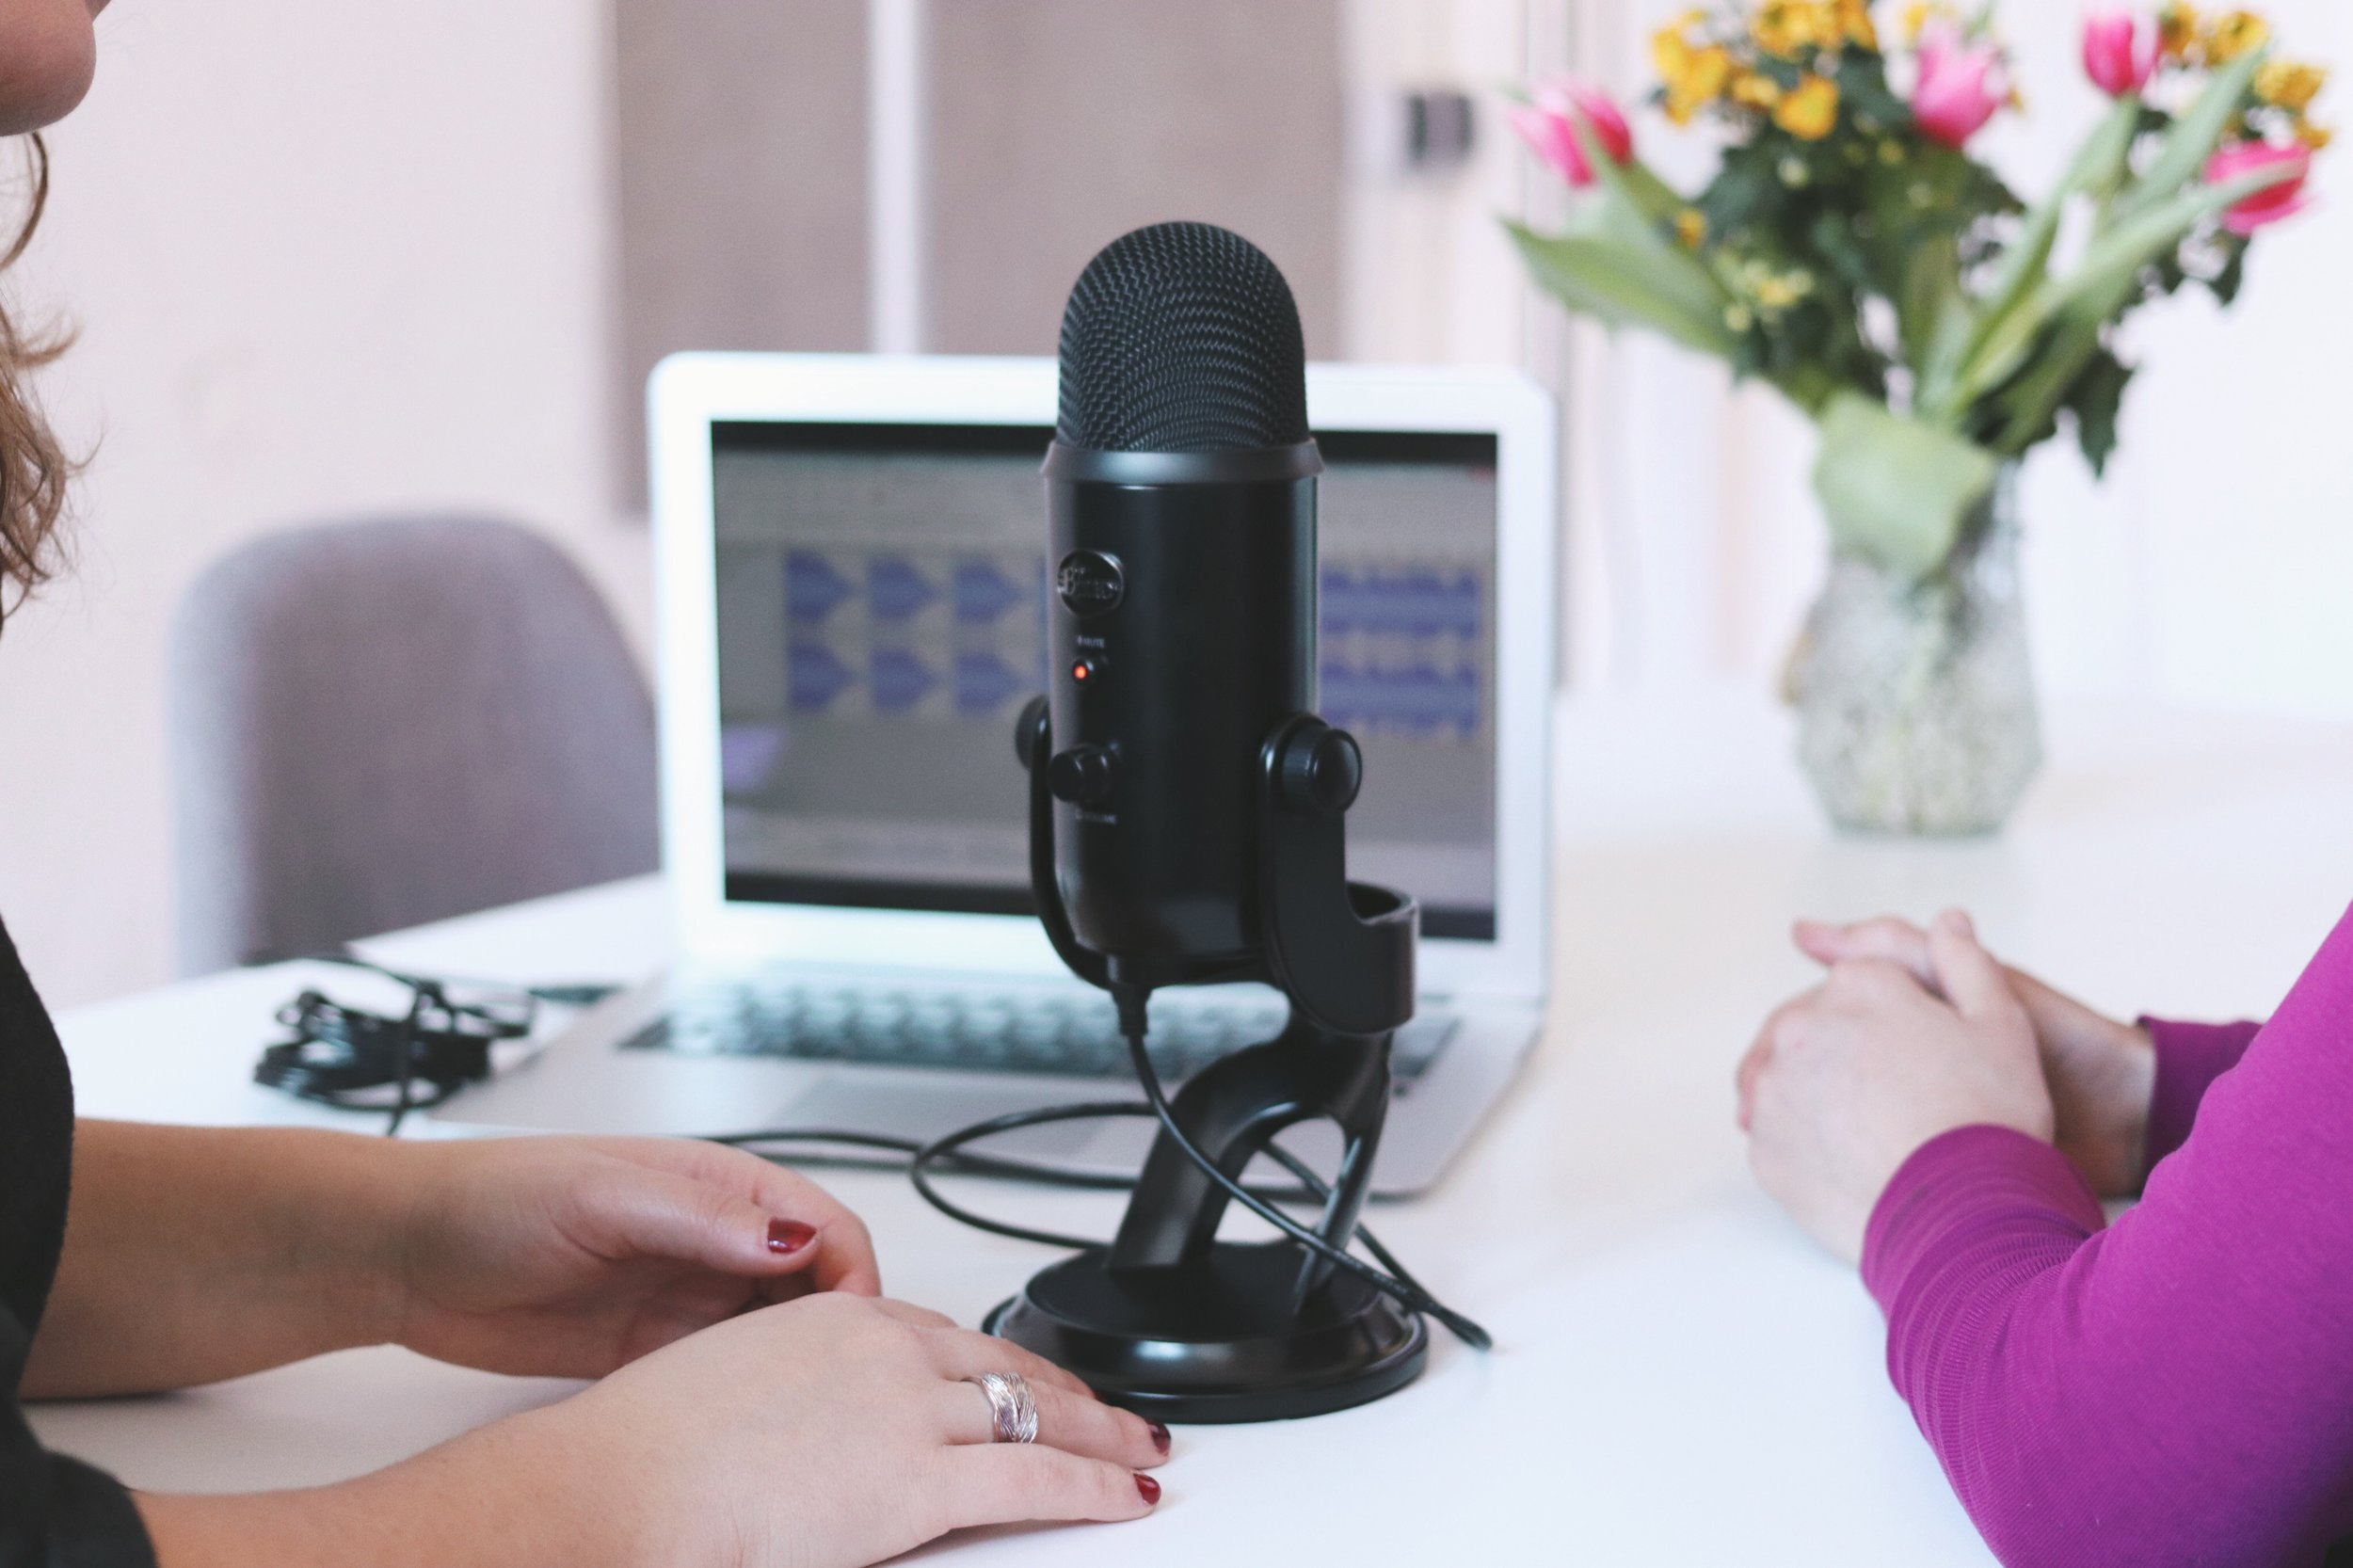 A USB microphone (Blue Yeti) and two women recording a podcast